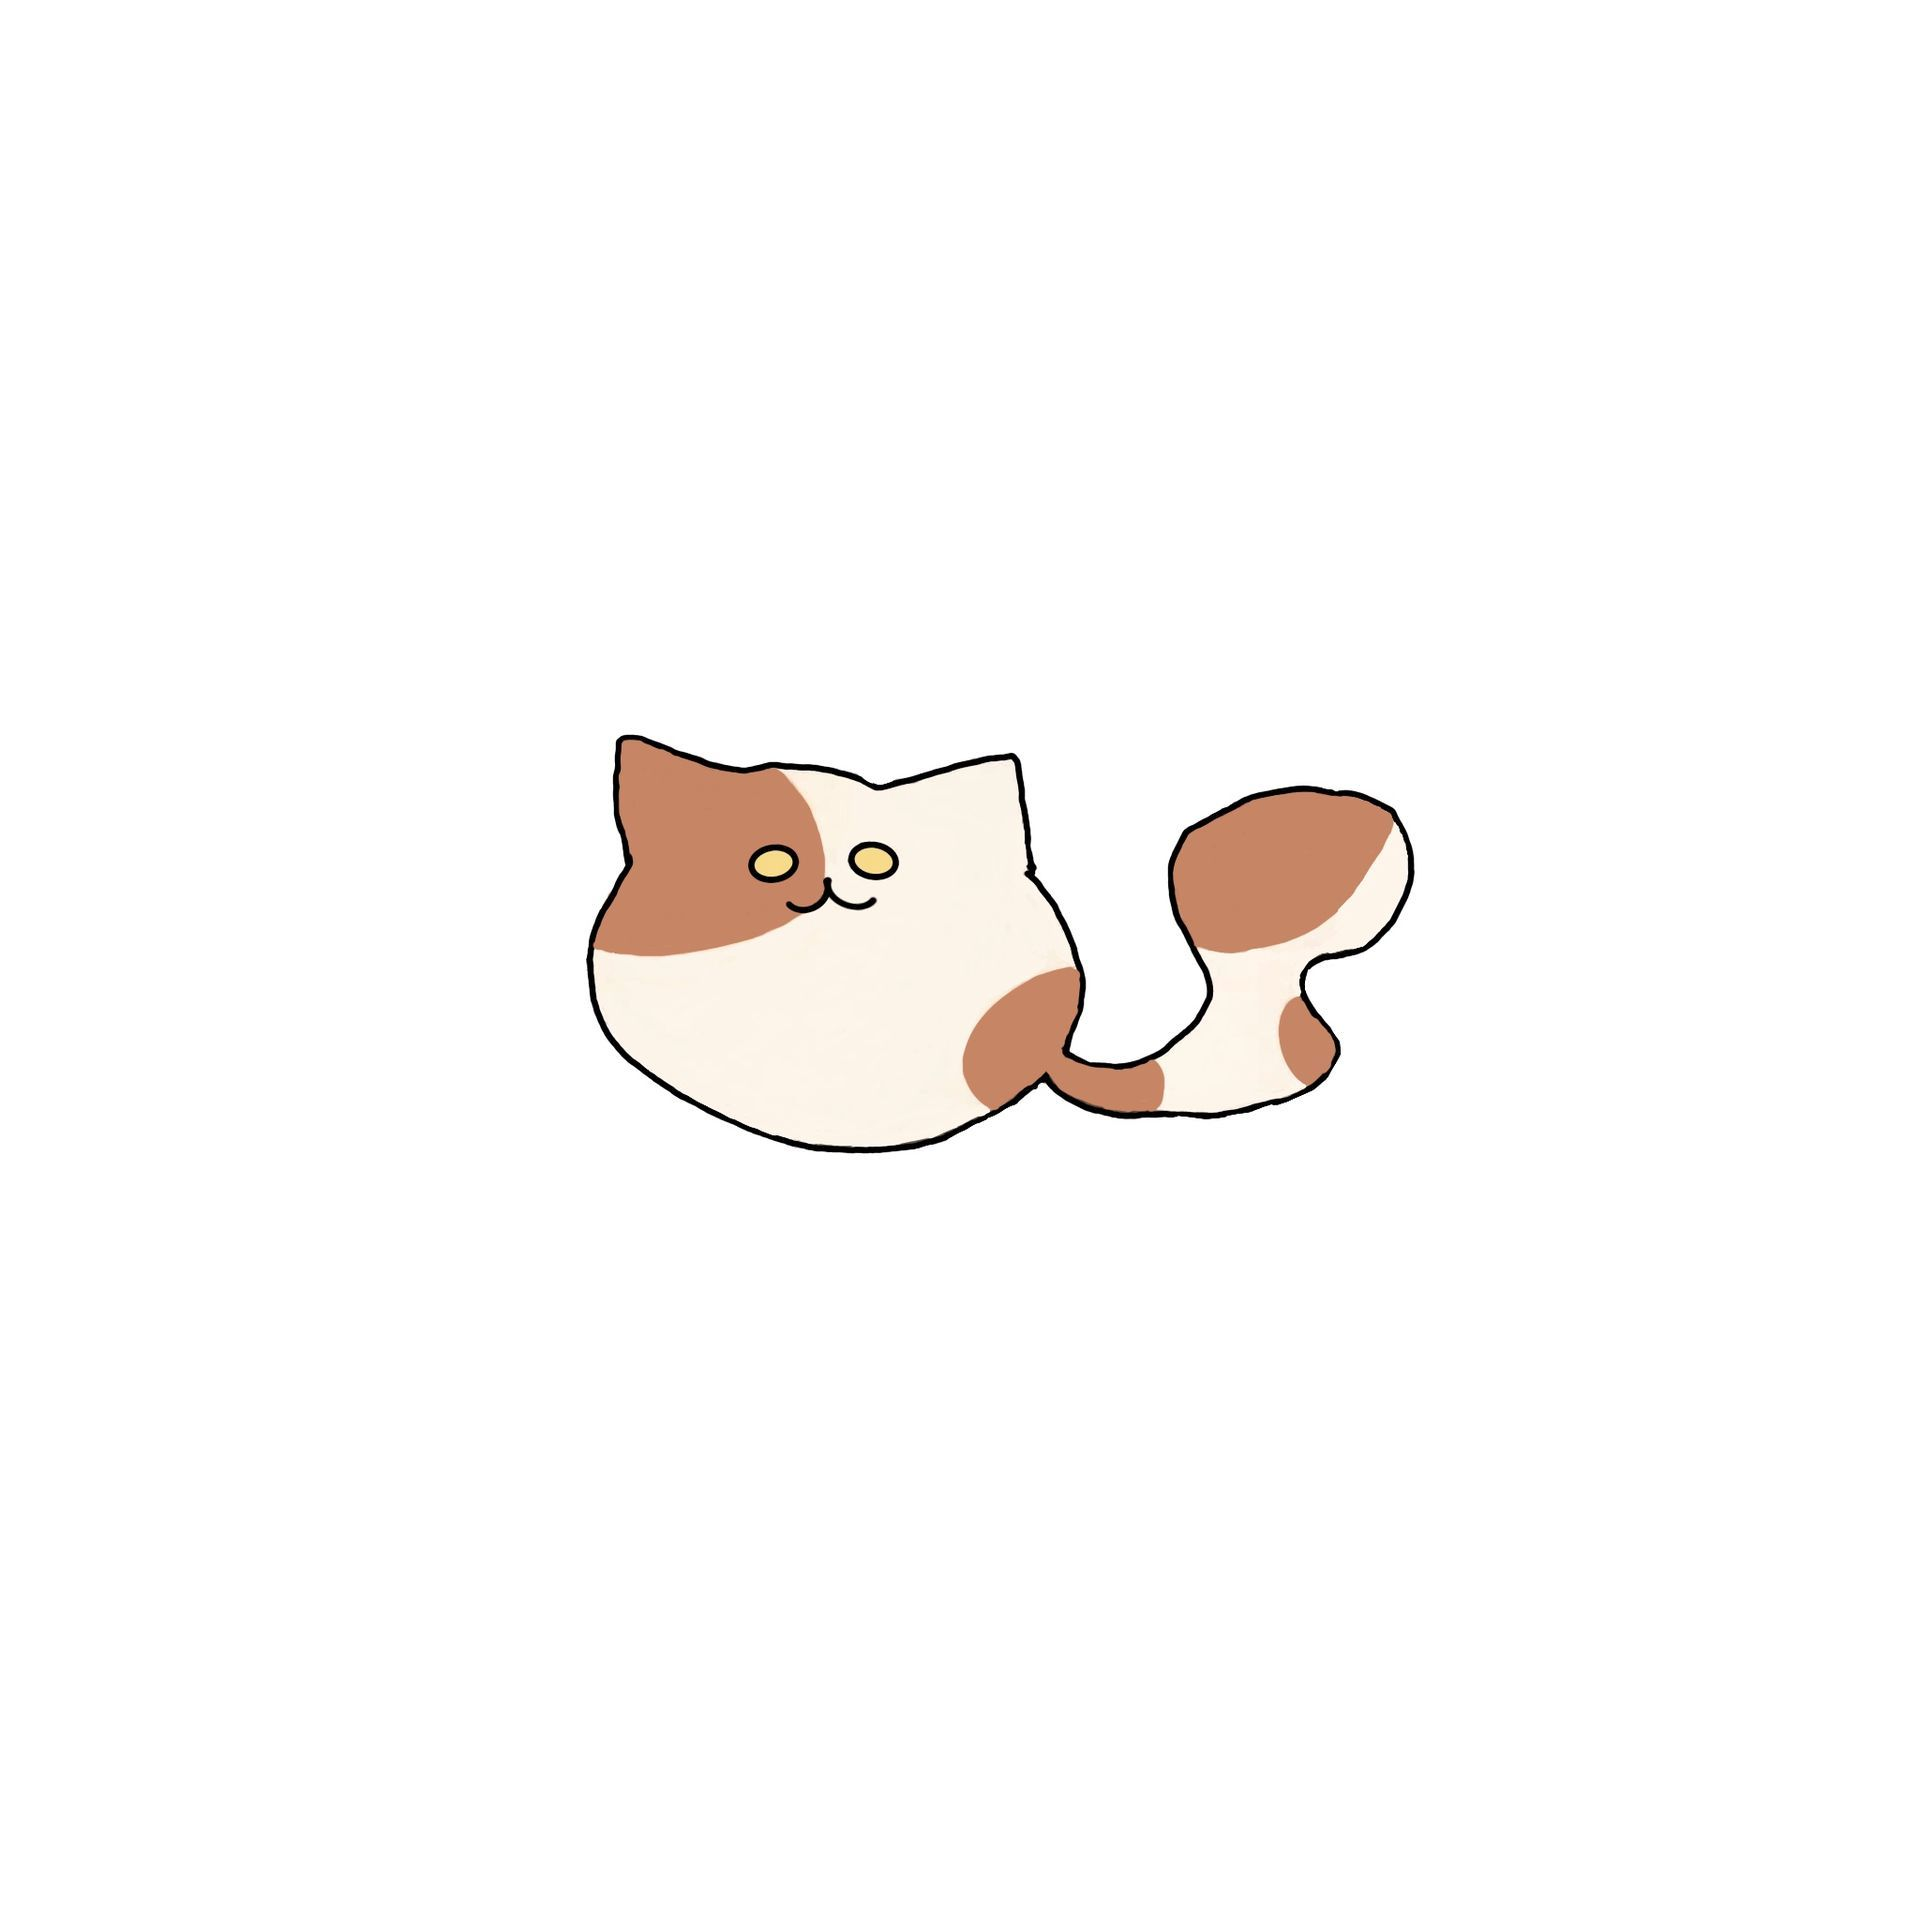 Then a cute cat I drew just because! For those cat lovers out there you can get a bunch of these cute cats as stickers, on a pillow, and a lot more!